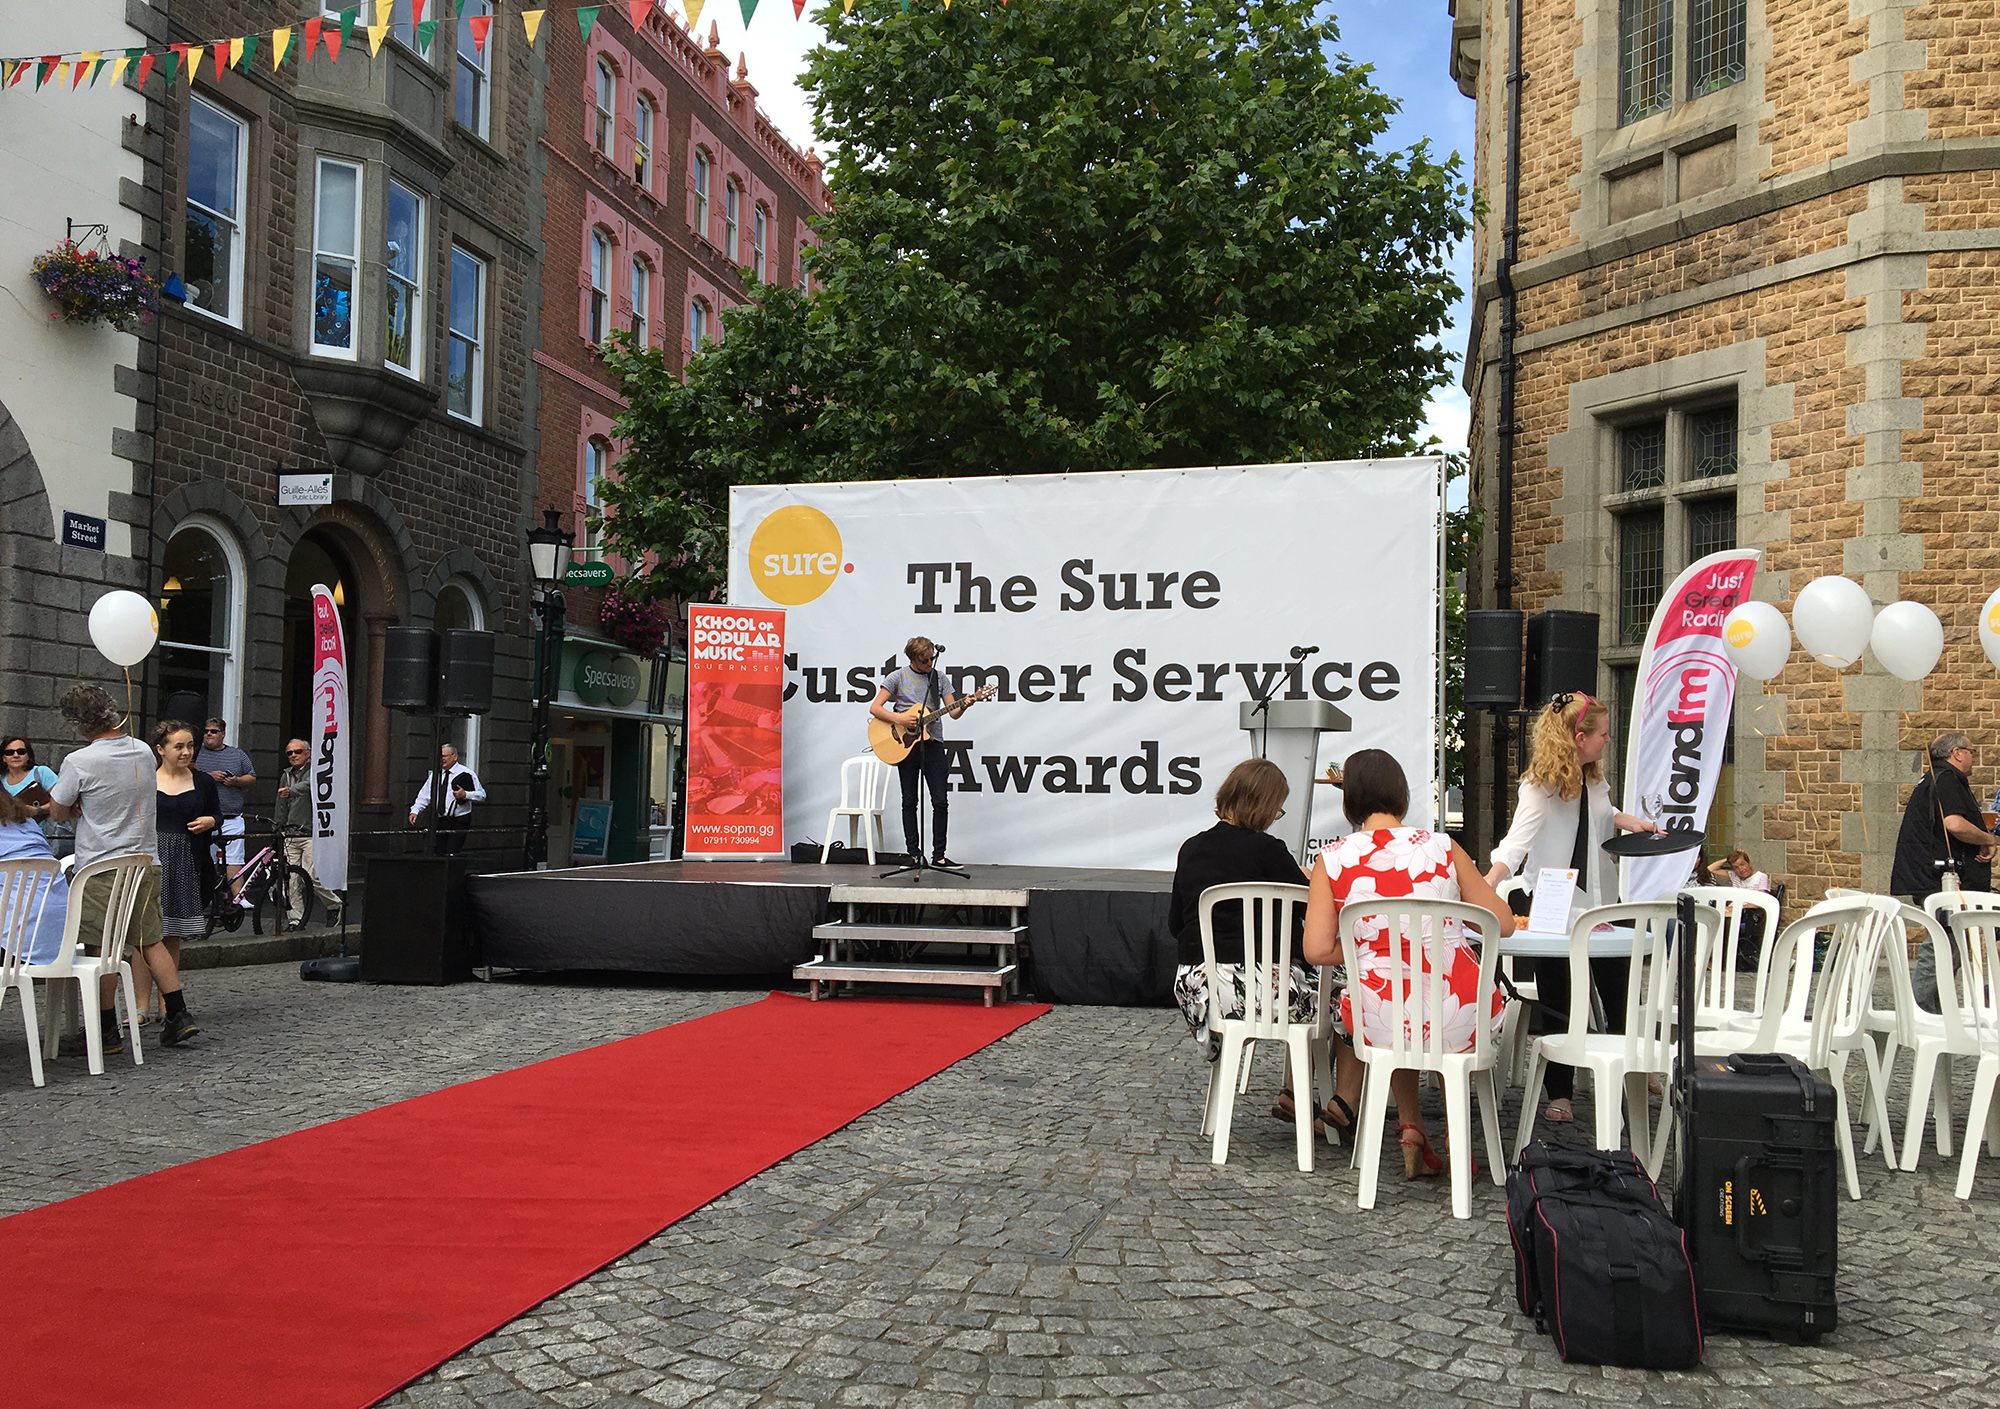 Sure Customer Service Awards